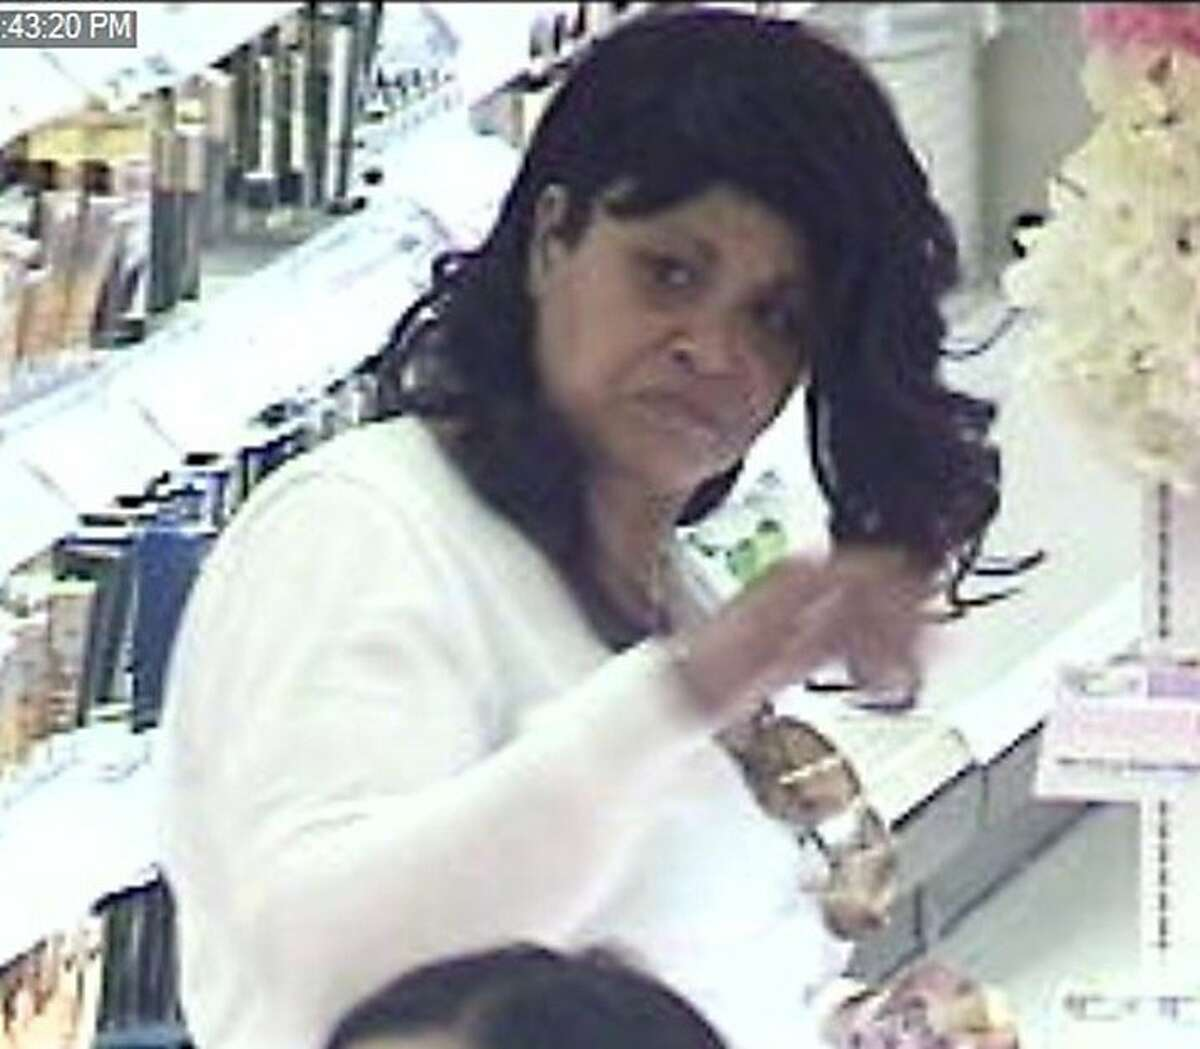 Police released a photo of a woman suspected of robbing a retail store on March 27 and coughing on security employees to get away.